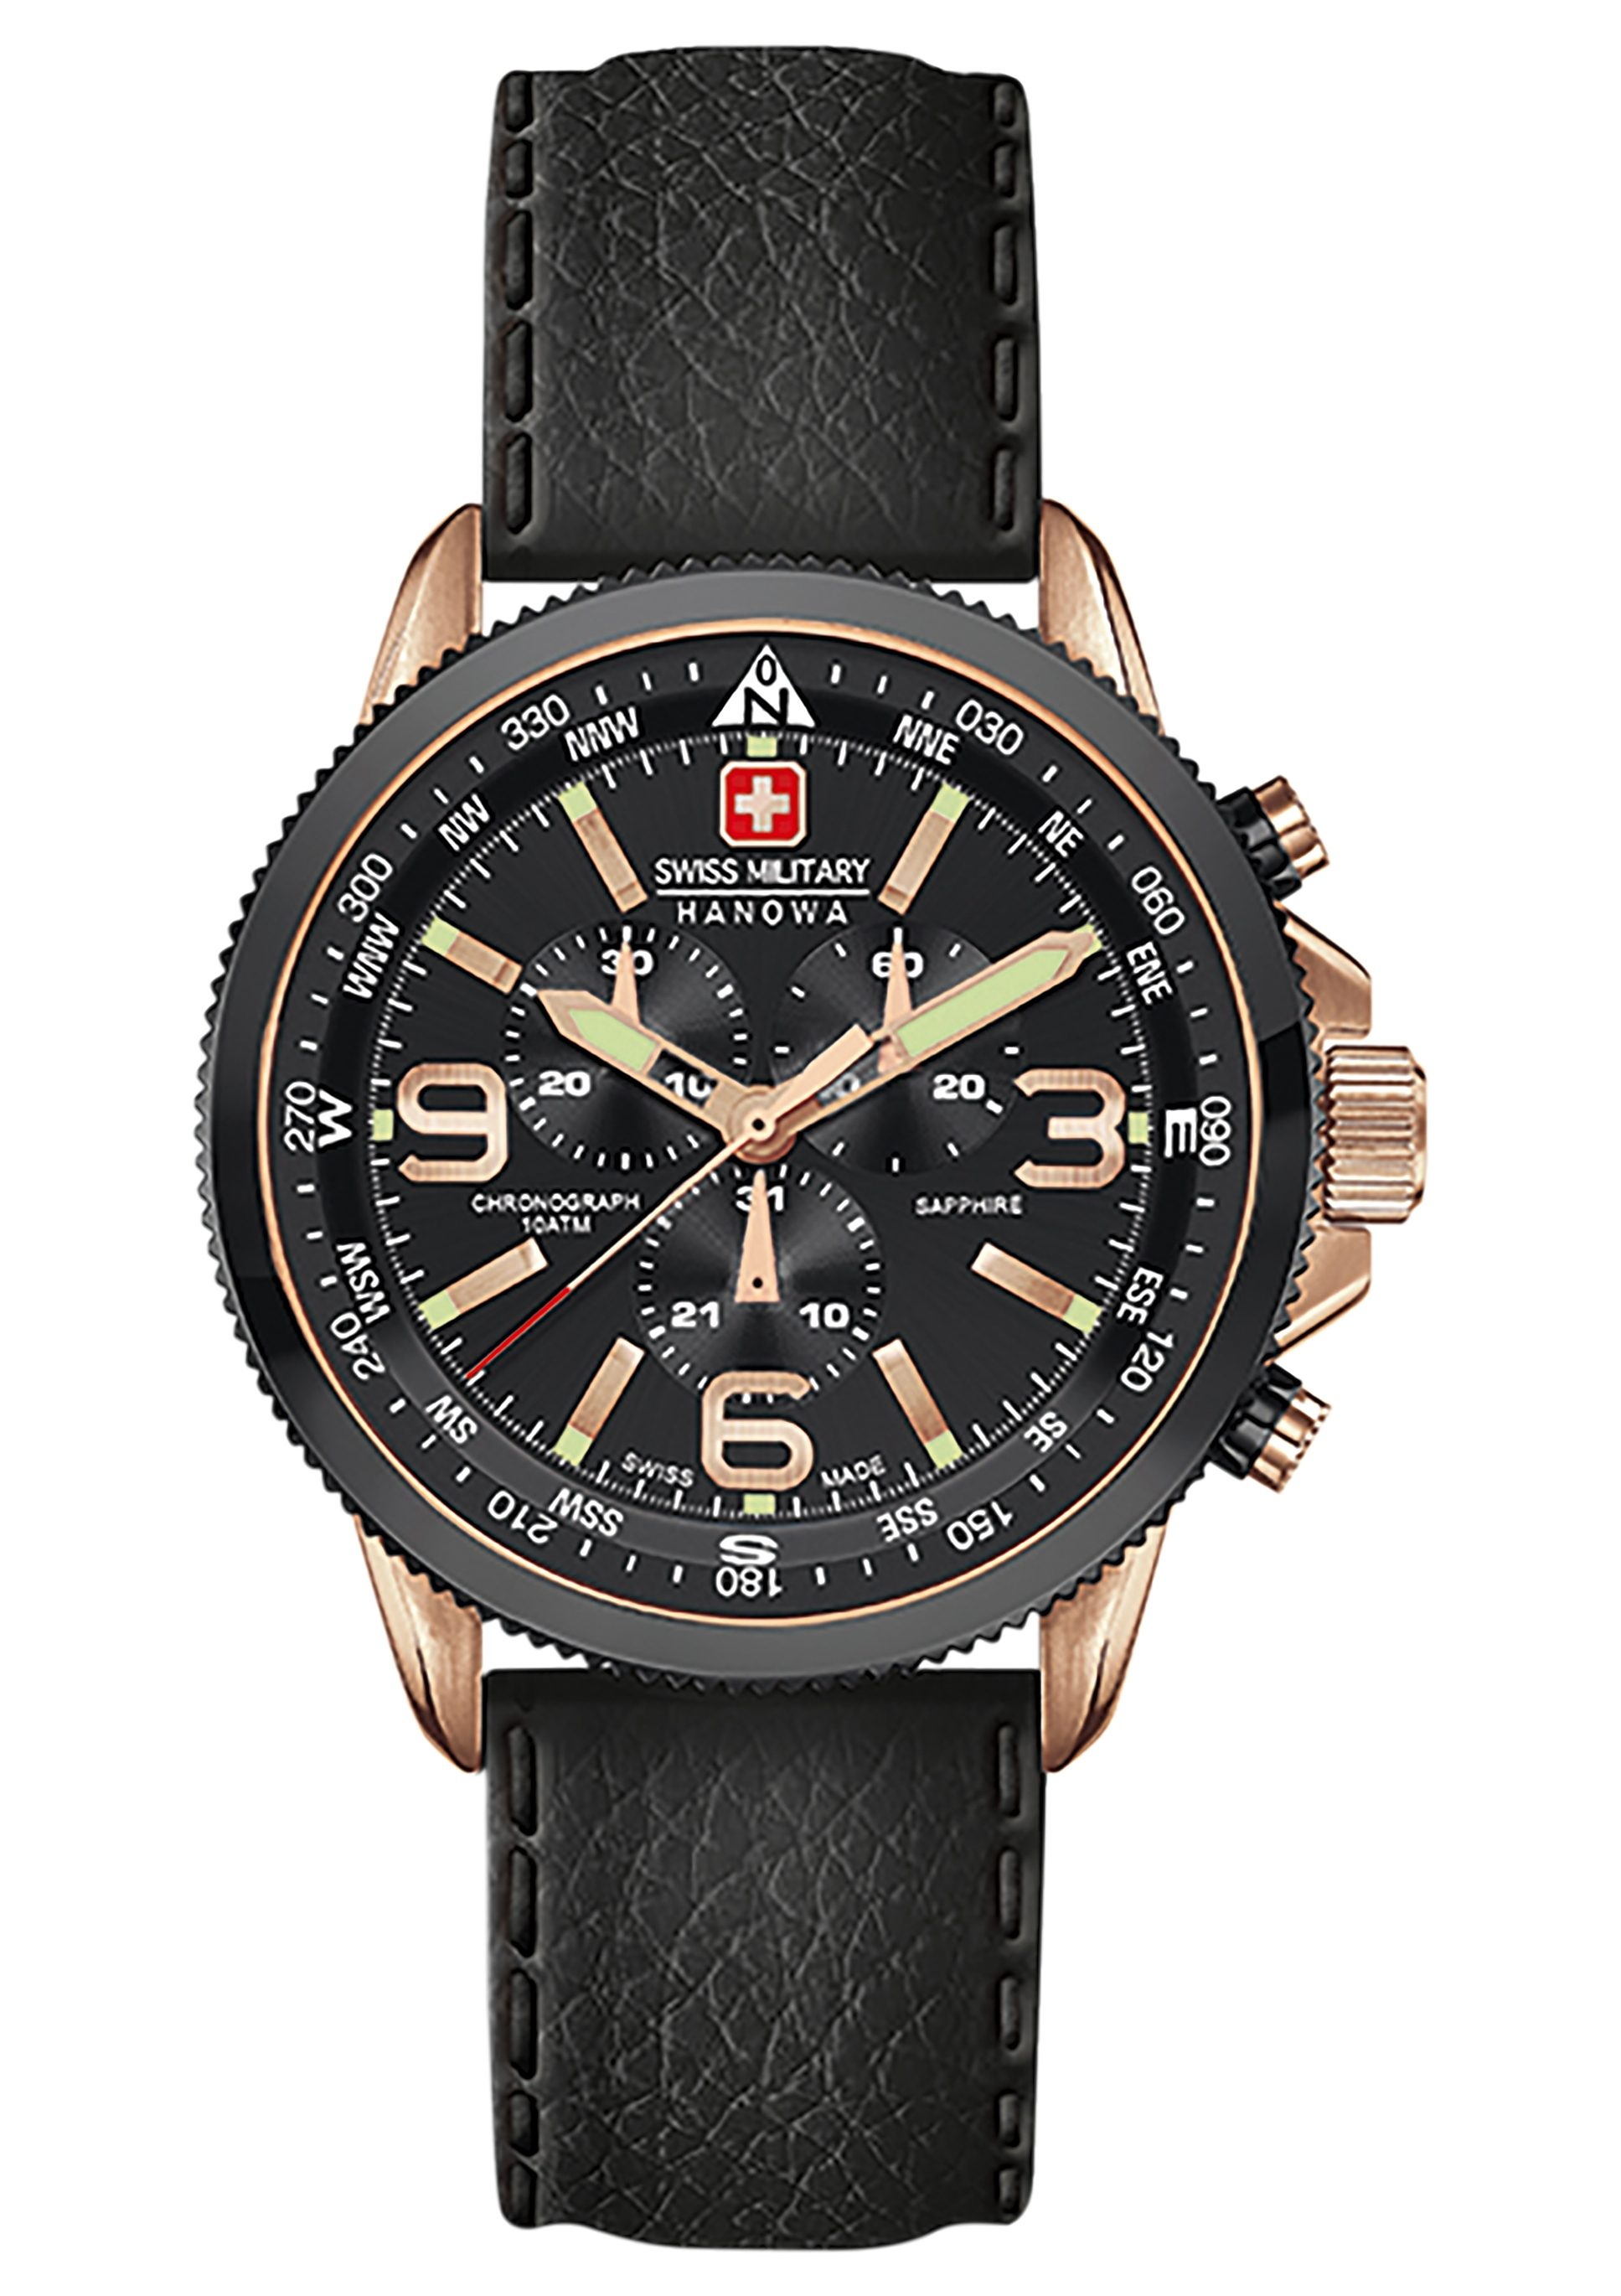 Swiss Military Hanowa Chronograph »ARROW CHRONO, 06-4224.09.007«